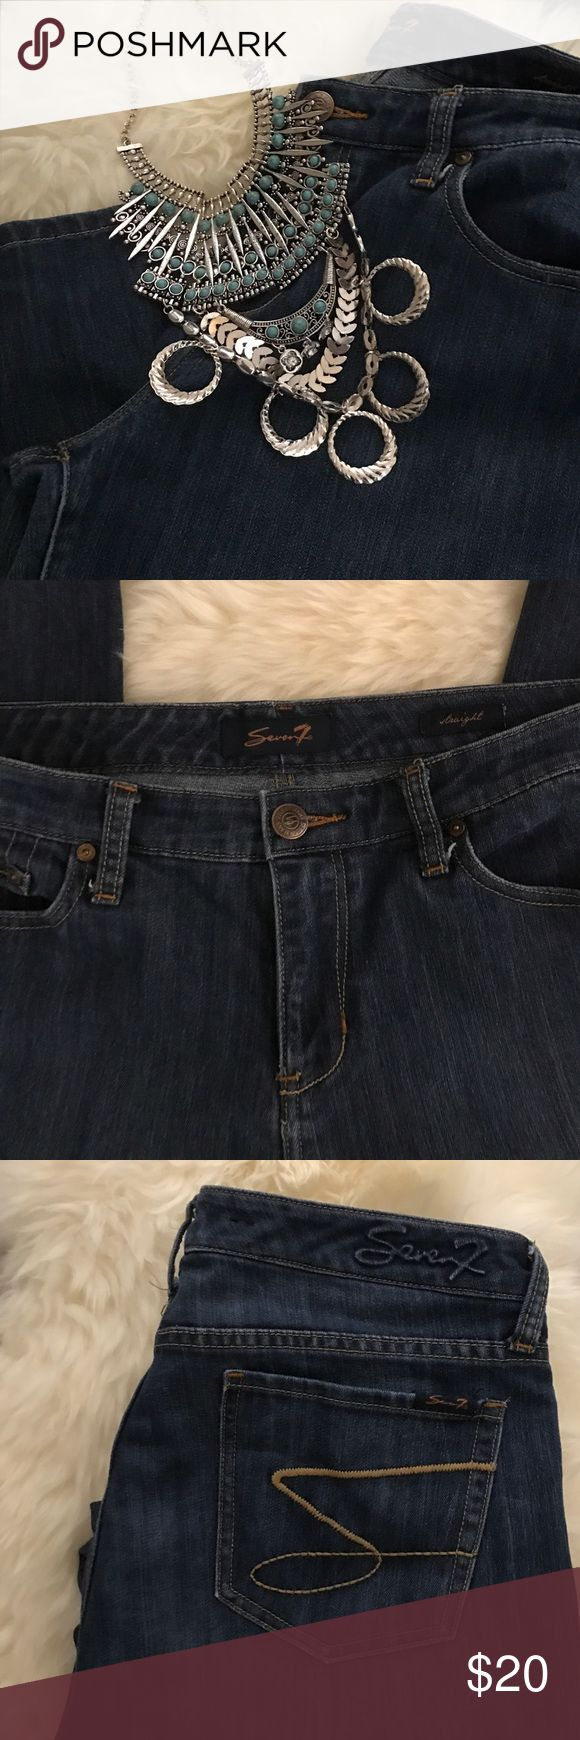 """EUC Seven7 Jeans Dark wash Seven7 straight leg jeans EUC. SZ 12.                                                                  ✅NO TRADES🚫OFFLINE DEALS ✅OFFERS ENCOURAGED ✅ASK ANY QUESTIONS  ✅REFER TO ALL PICS APART OF """"ITEM DESCRIPTION"""" ✅LISTED MULTIPLE SITES ✅SMOKE/PET FREE ***necklace not for sale*** ♻️SHIPPING BOXES/PAPER Seven7 Jeans Straight Leg"""